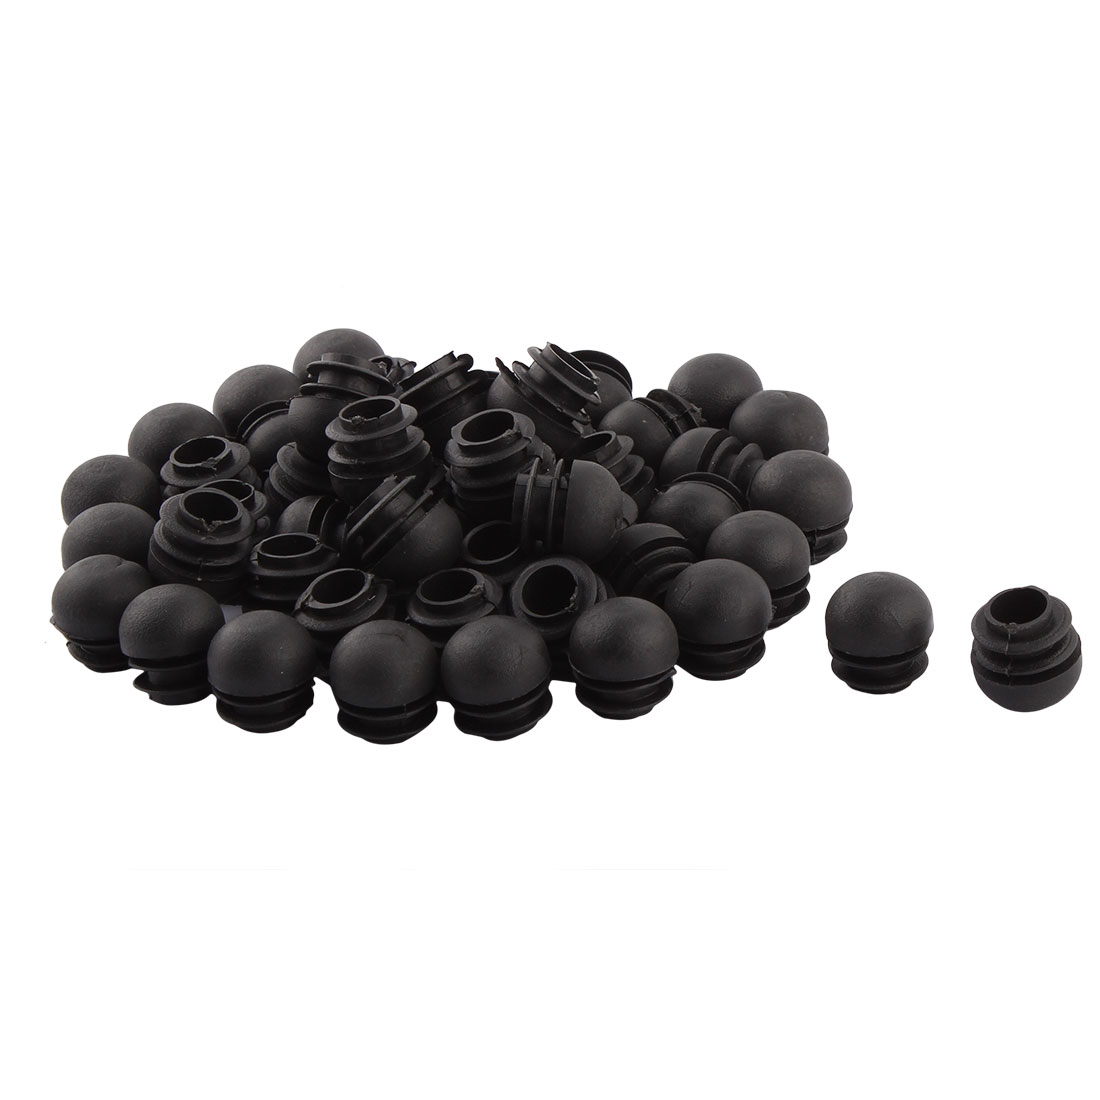 Home Office Plastic Round Shaped Table Chair Leg Feet Tube Pipe Insert Black 22mm Dia 100 PCS